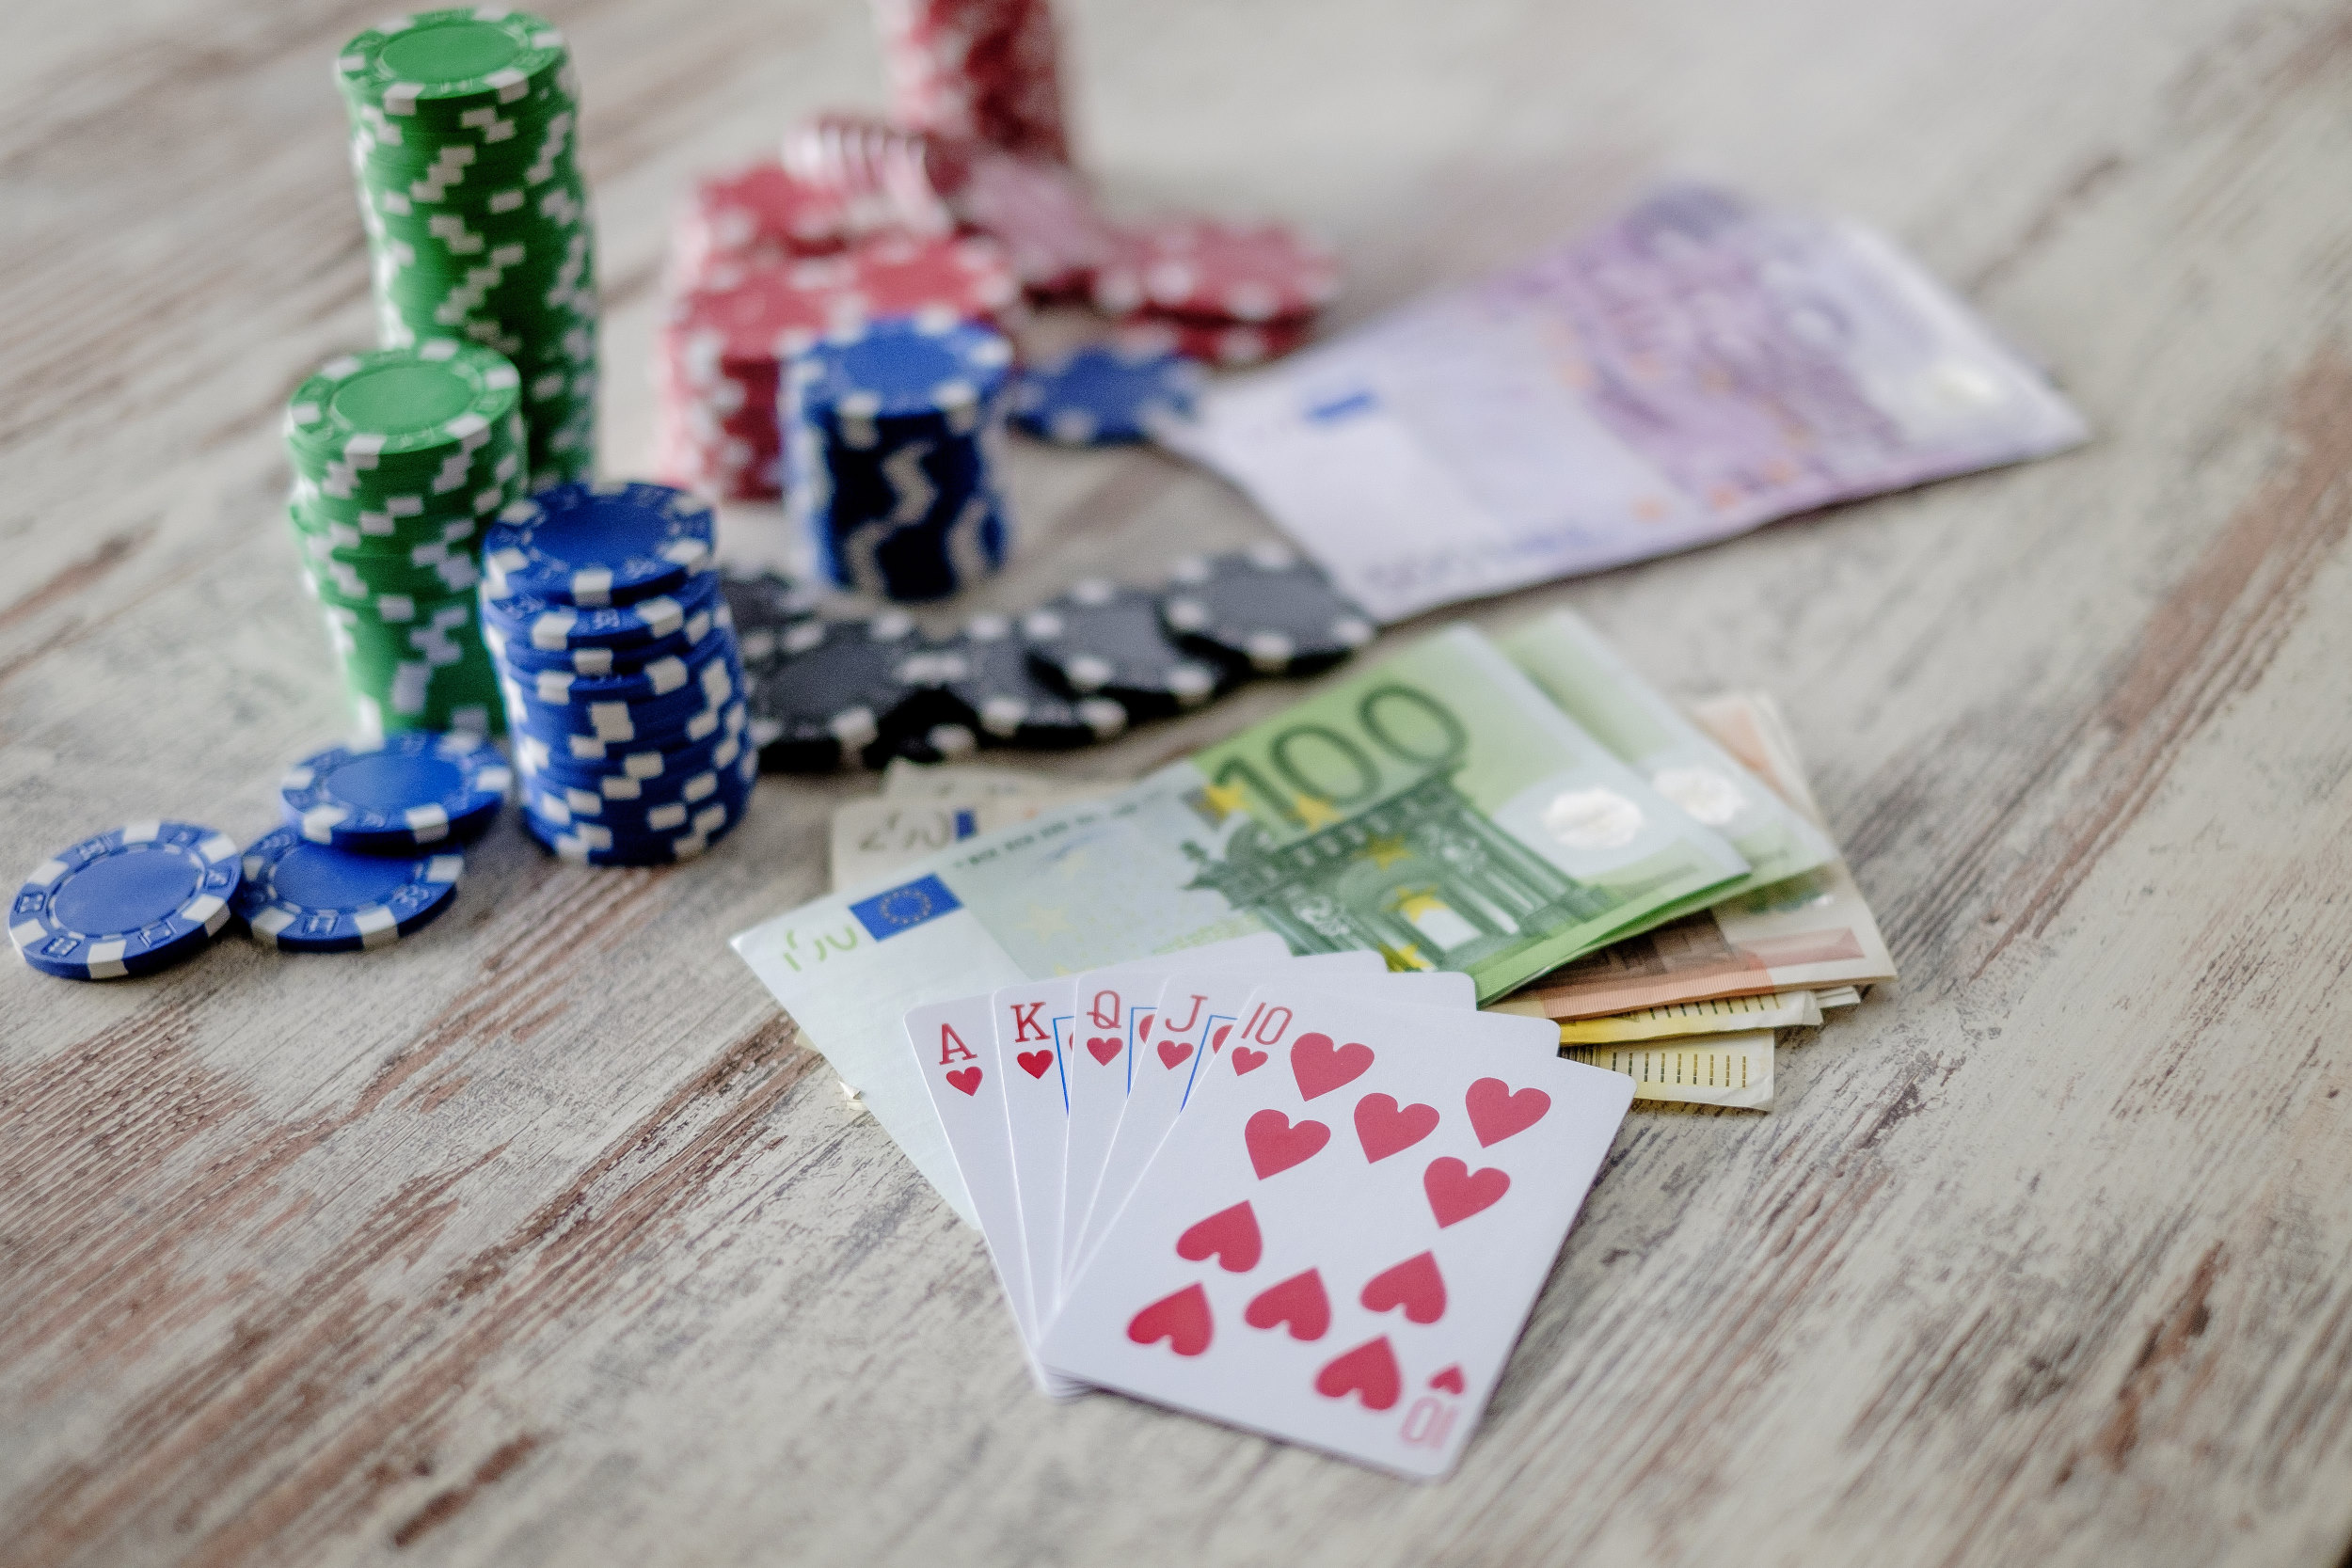 geld, money, poker, gokken, gamble, gokspel, fiches, euro, kaarten, Royal Flush